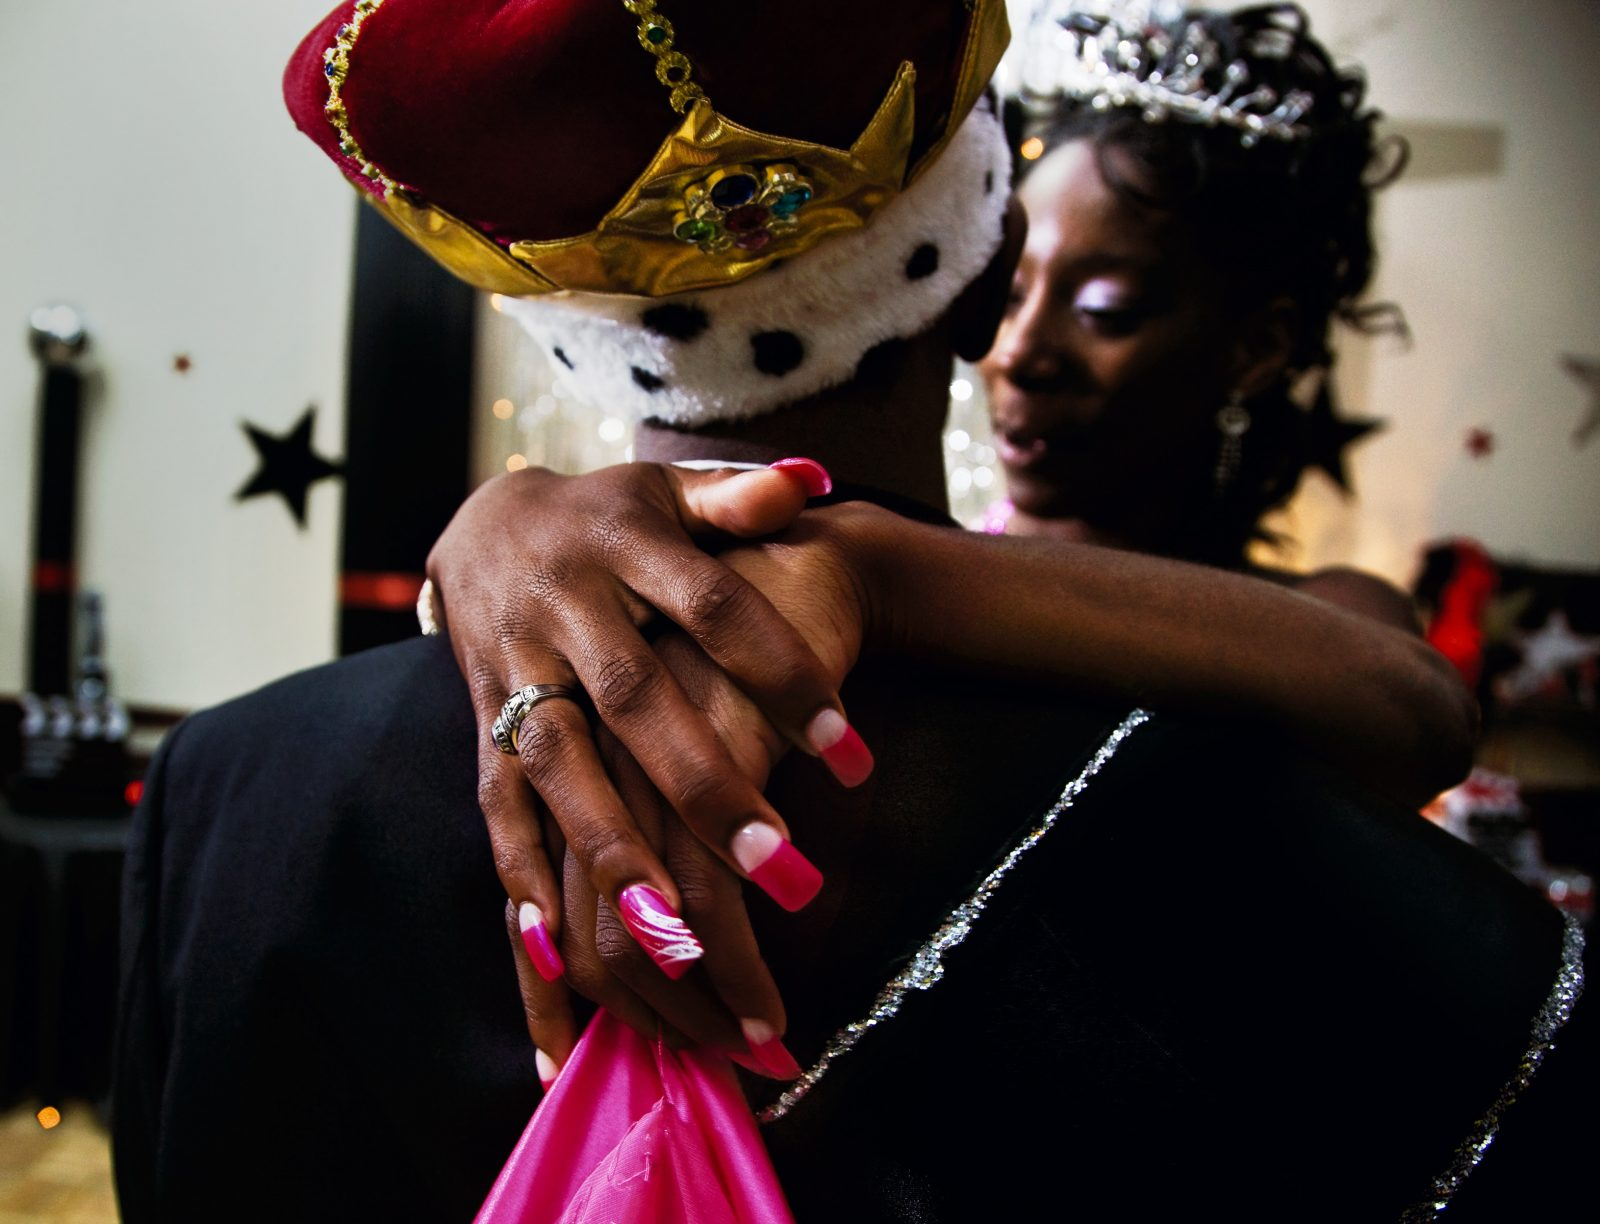 Top: Gillian Laub, Prom king and queen, dancing at the black prom, Vidalia, Georgia, 2009. © Gillian Laub, Courtesy of Benrubi Gallery.